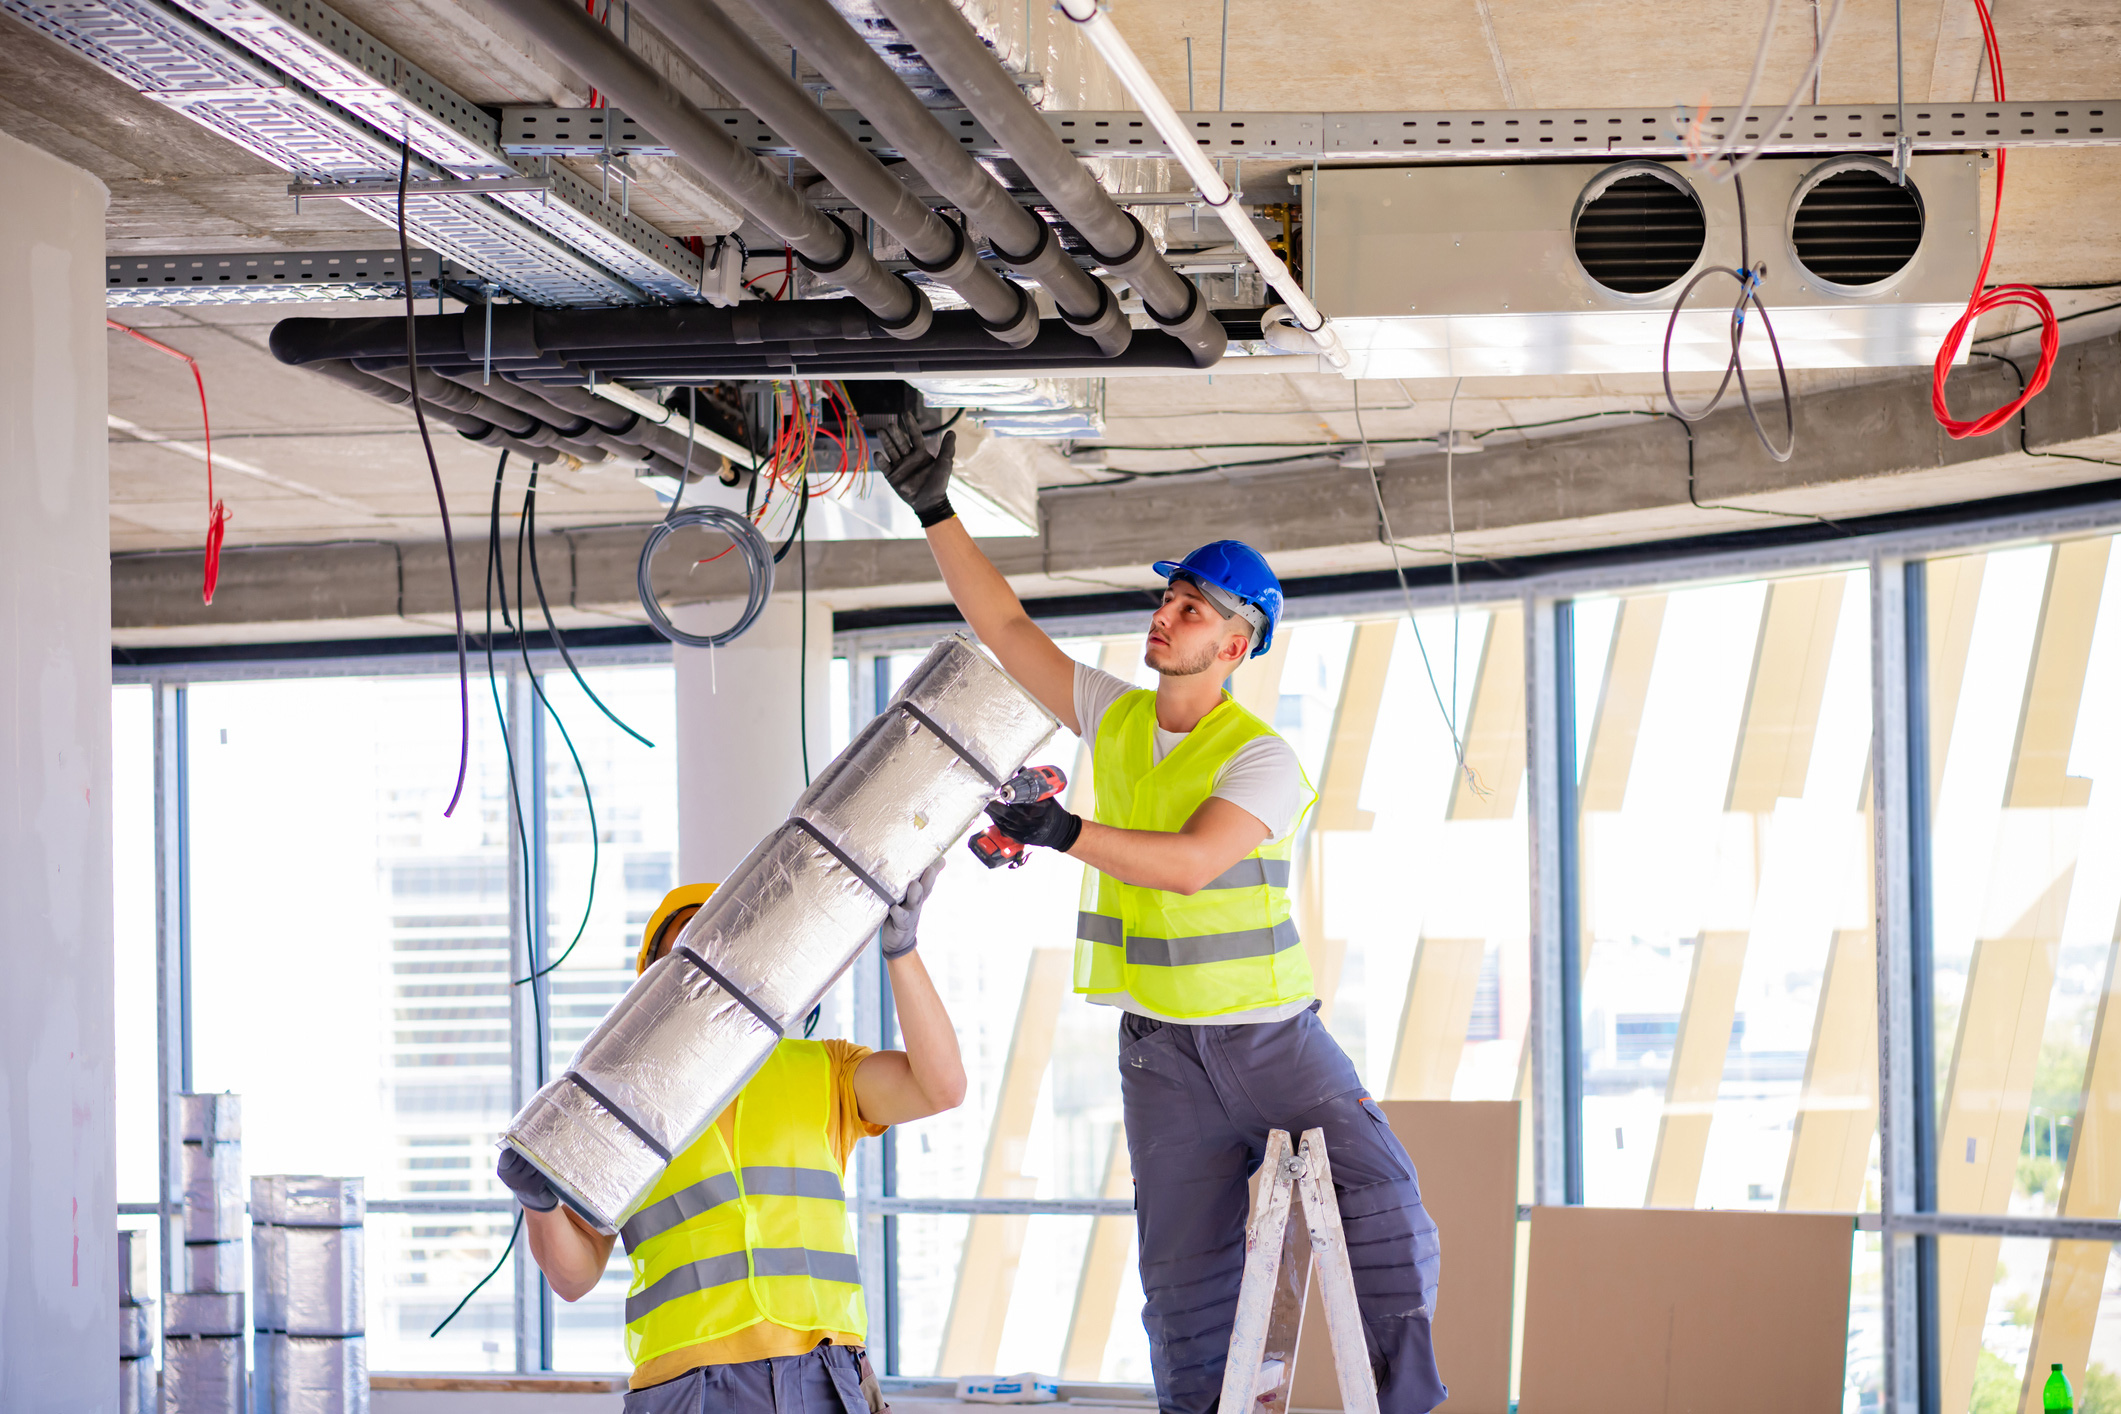 Two HVAC technicians installing overhead ductwork